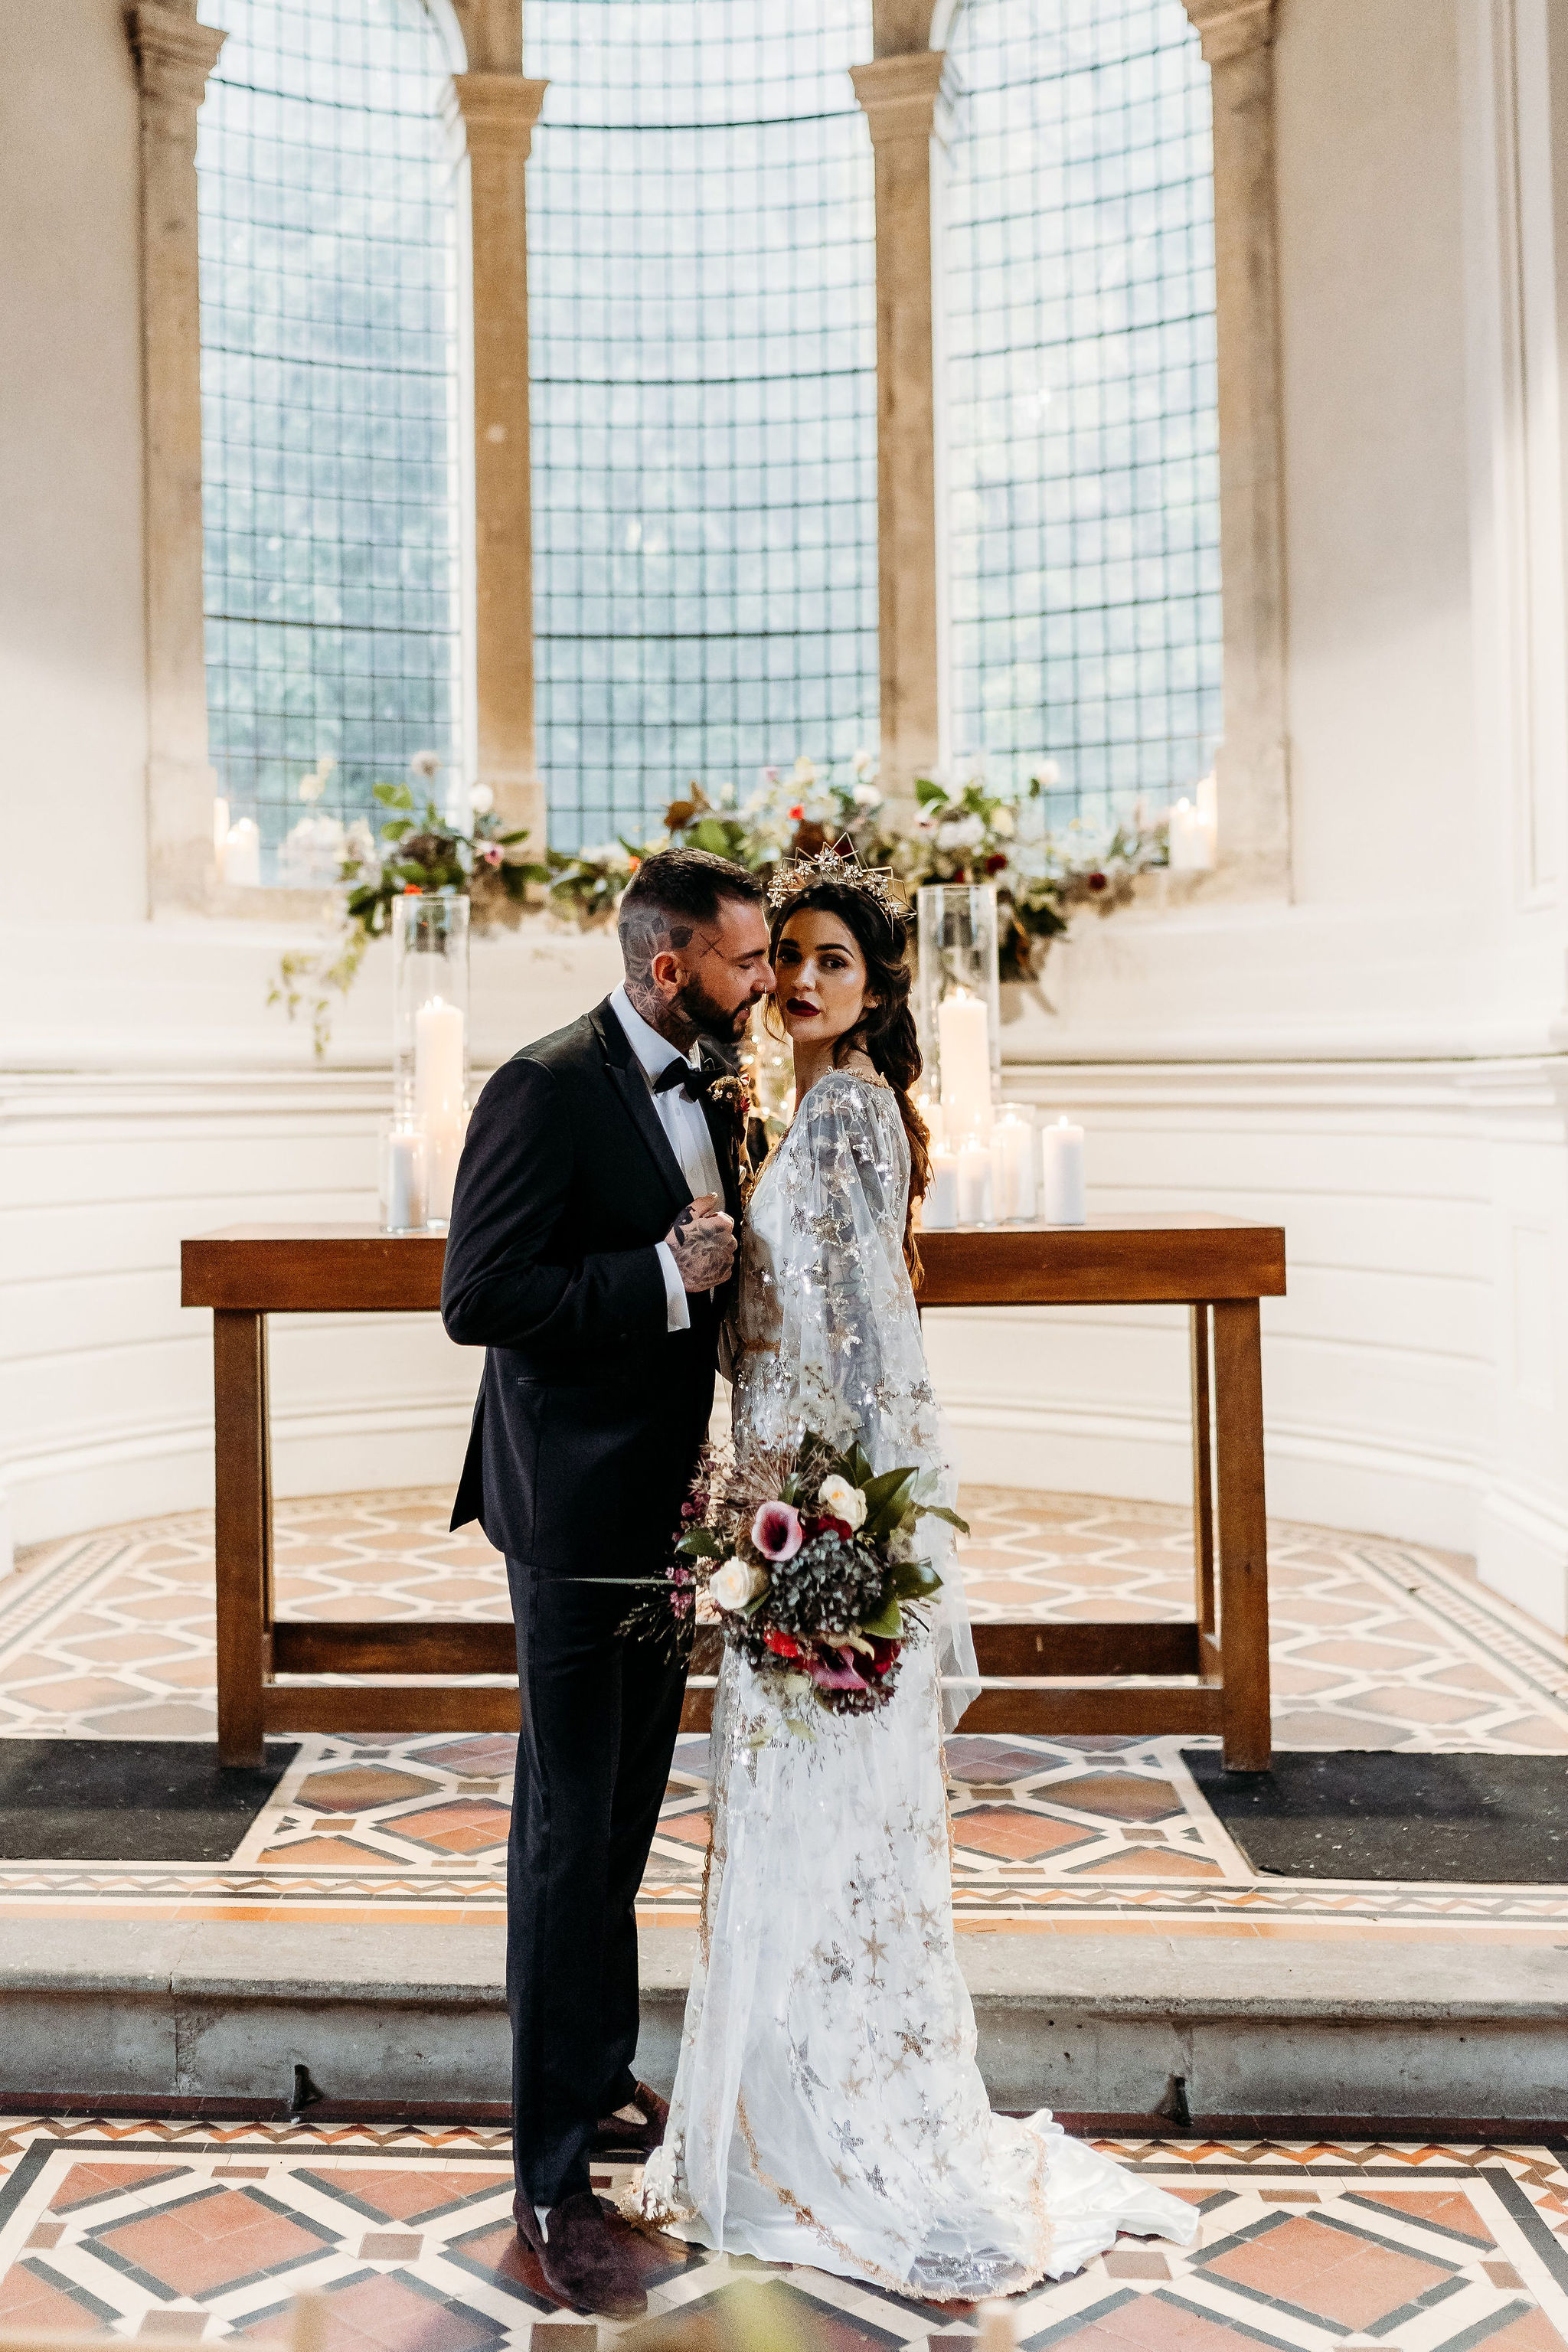 Leesha Williams Photography- Unconventional Wedding- Celestial Wedding Inspiration- alternative wedding- unique wedding photos